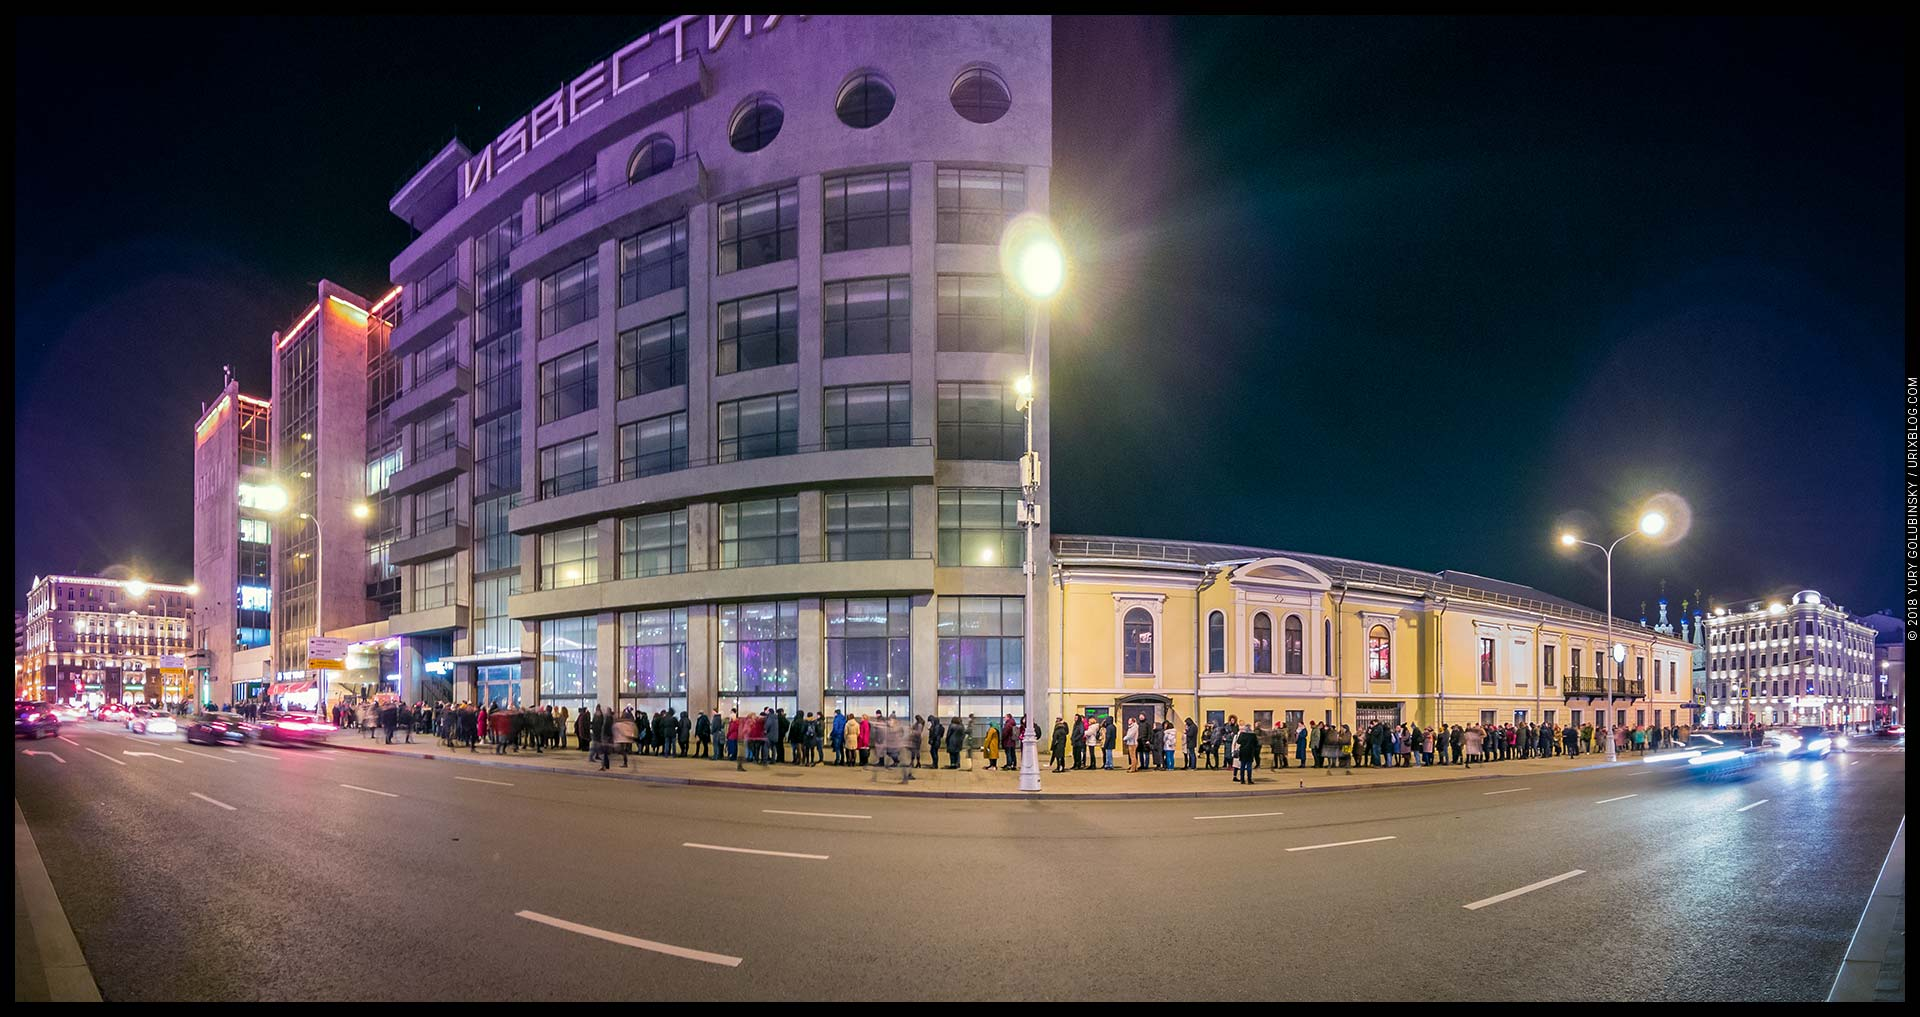 Pushkin square, Izvestiya, Moscow, Russia, queue, panorama, fisheye, SJCAM, SJ8Pro, RAW, 2018